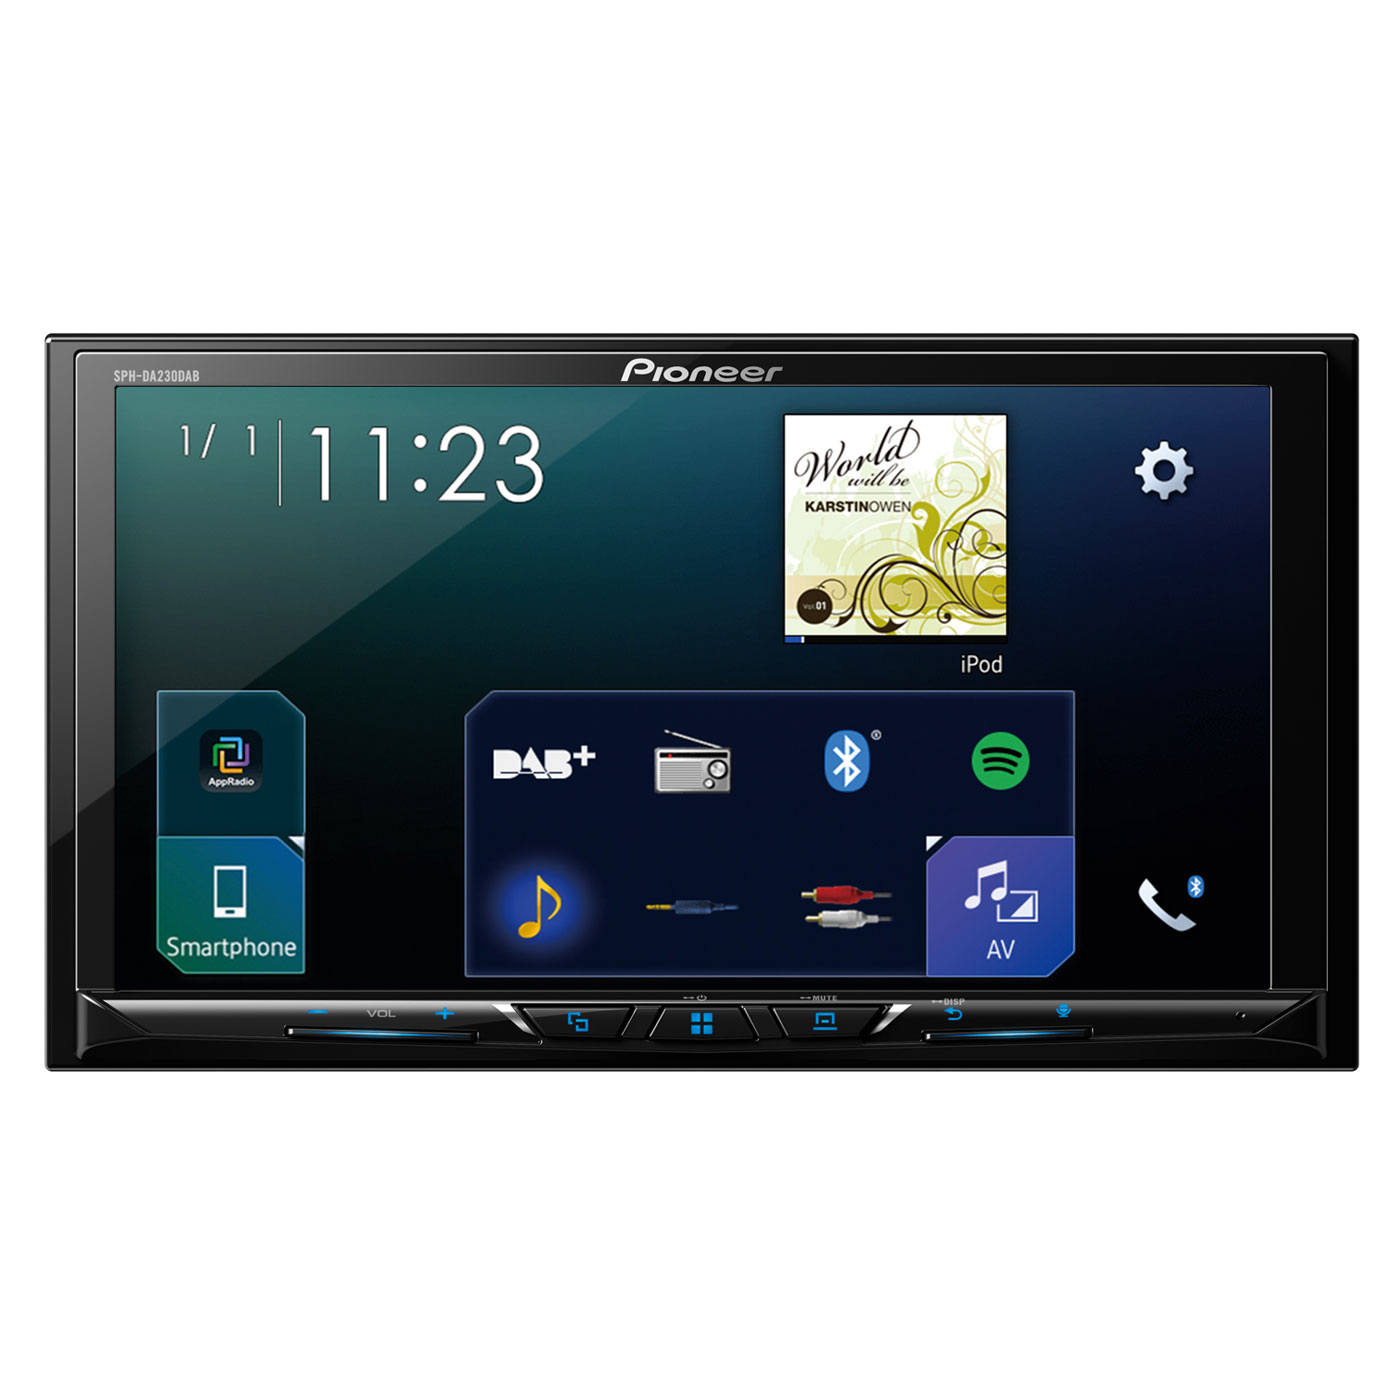 pioneer sph da230dab autoradio pioneer sur. Black Bedroom Furniture Sets. Home Design Ideas